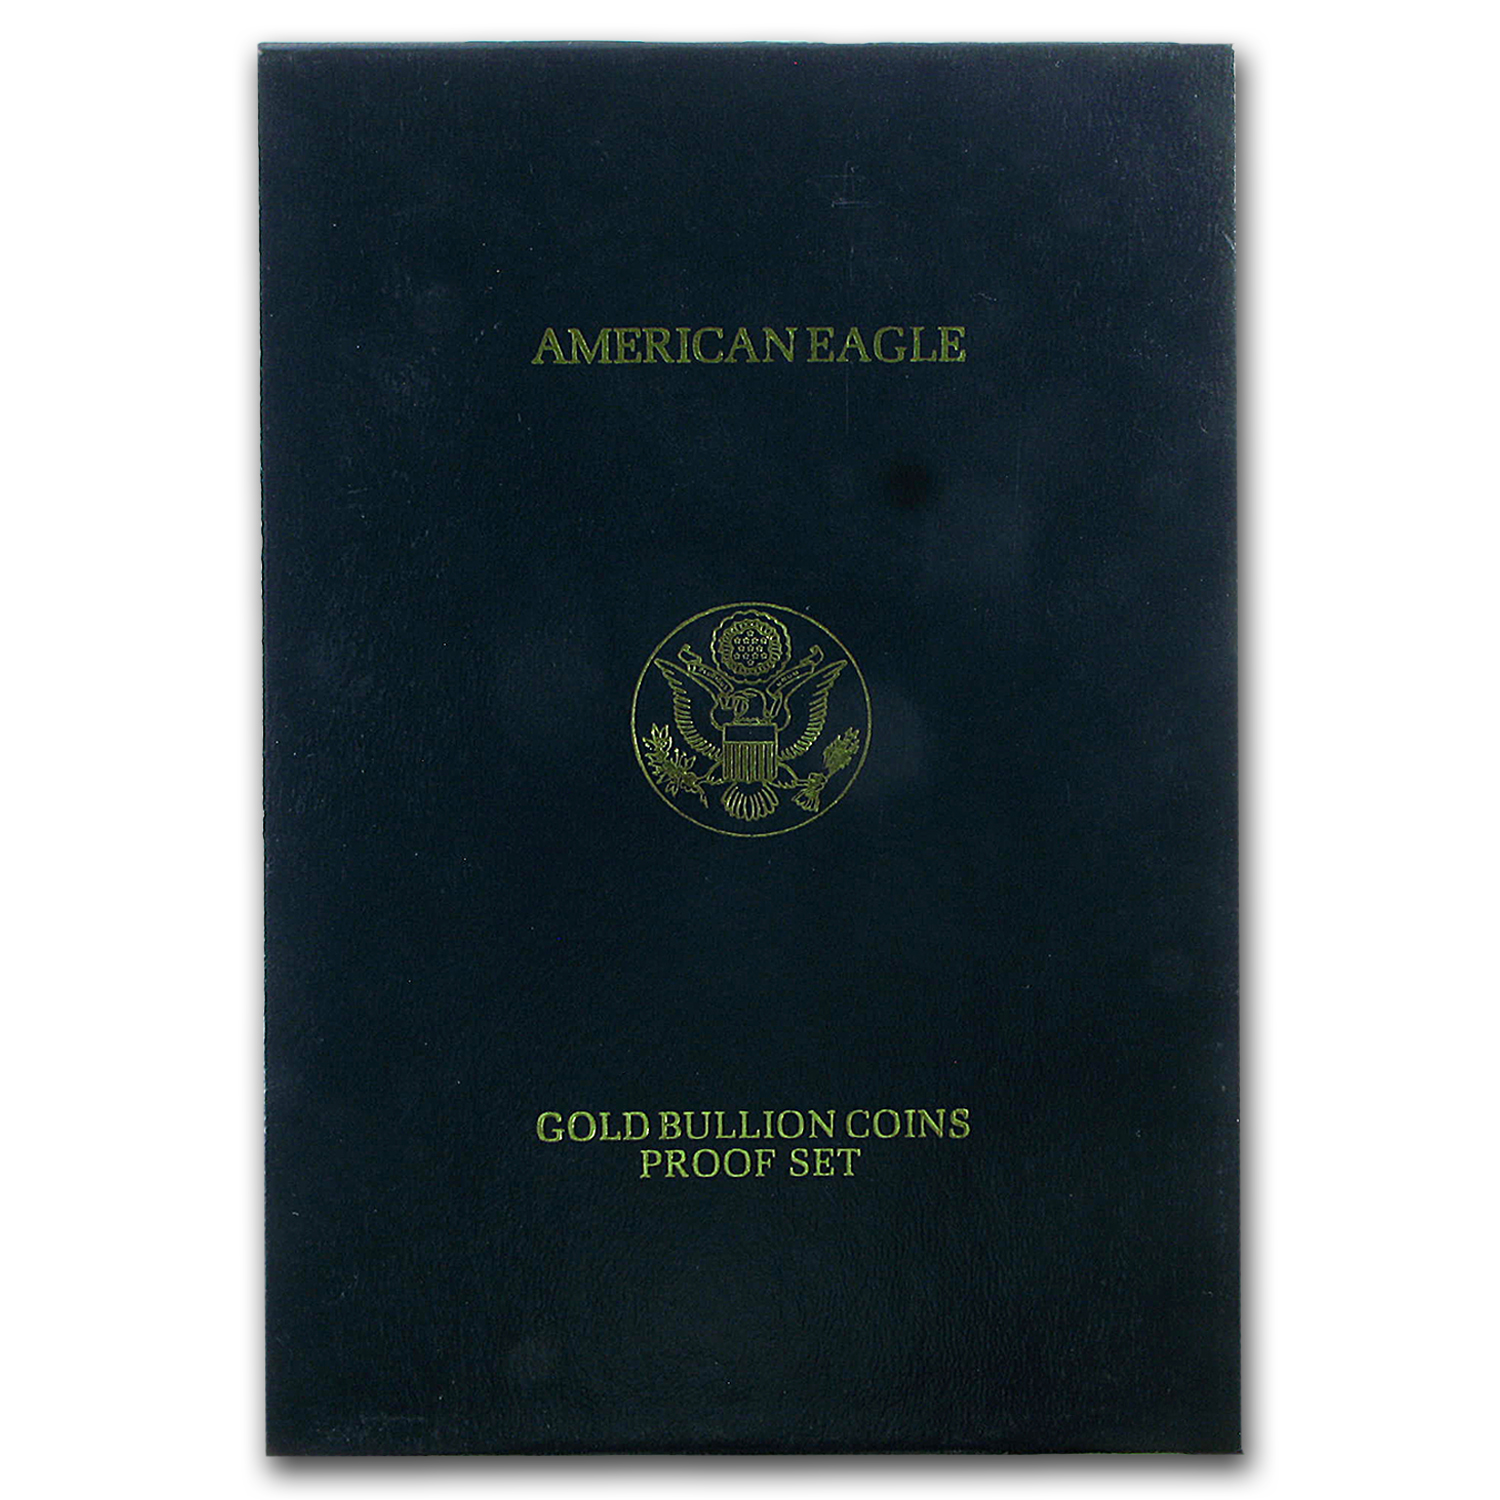 OEM Box & COA - 1988 4-Coin Proof Gold American Eagle Set